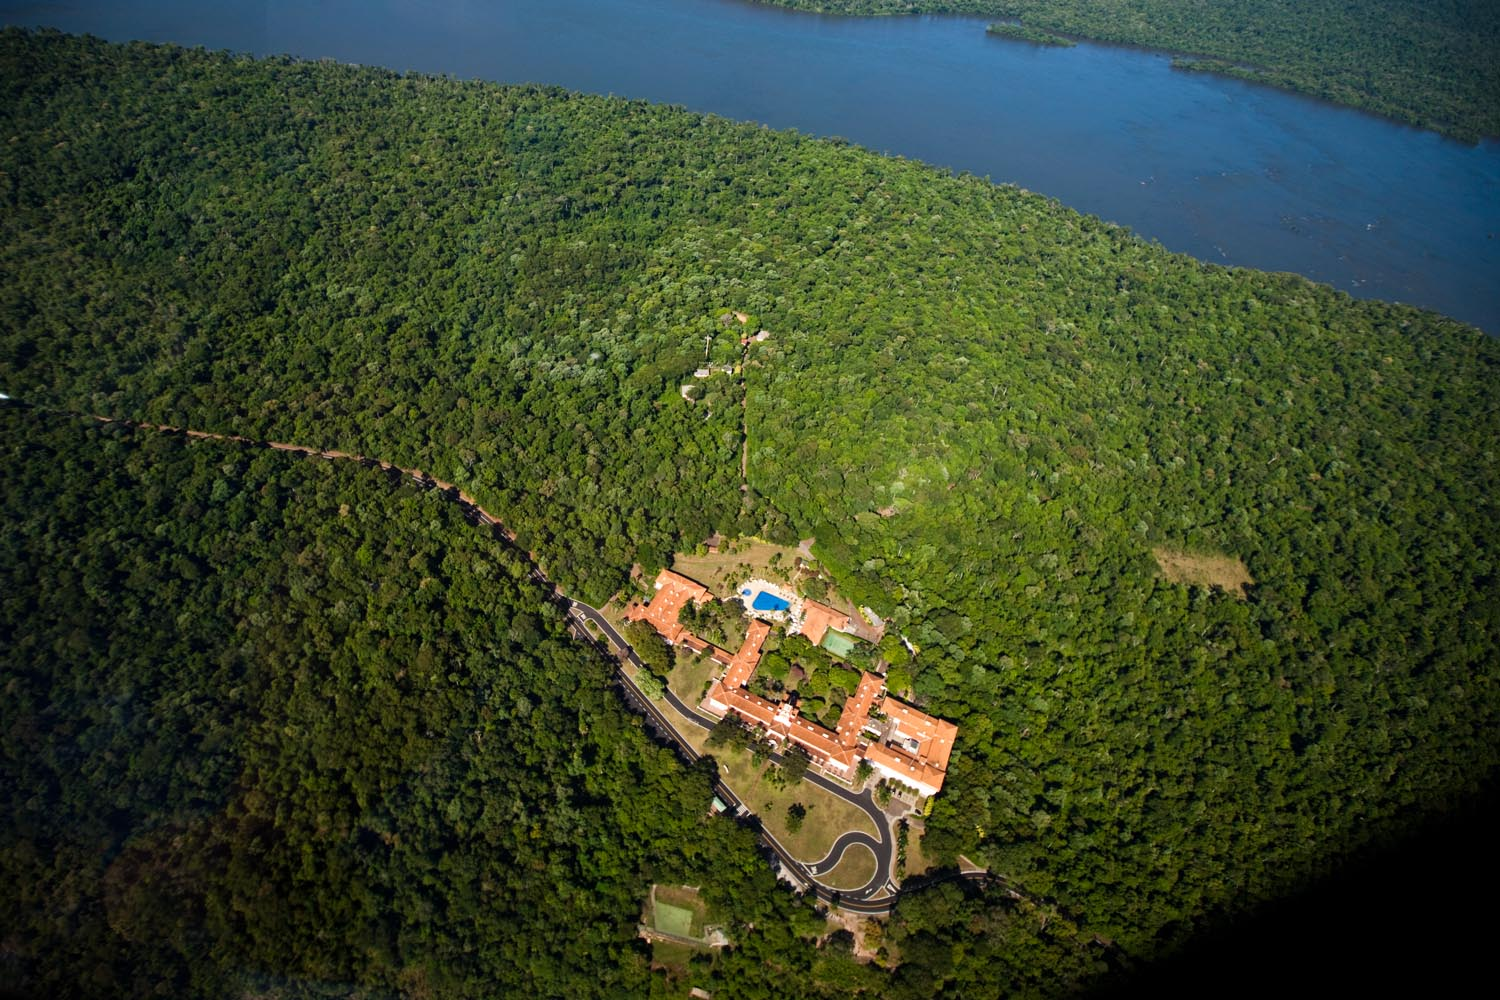 Aerial view of theIguazu river and the visitor center